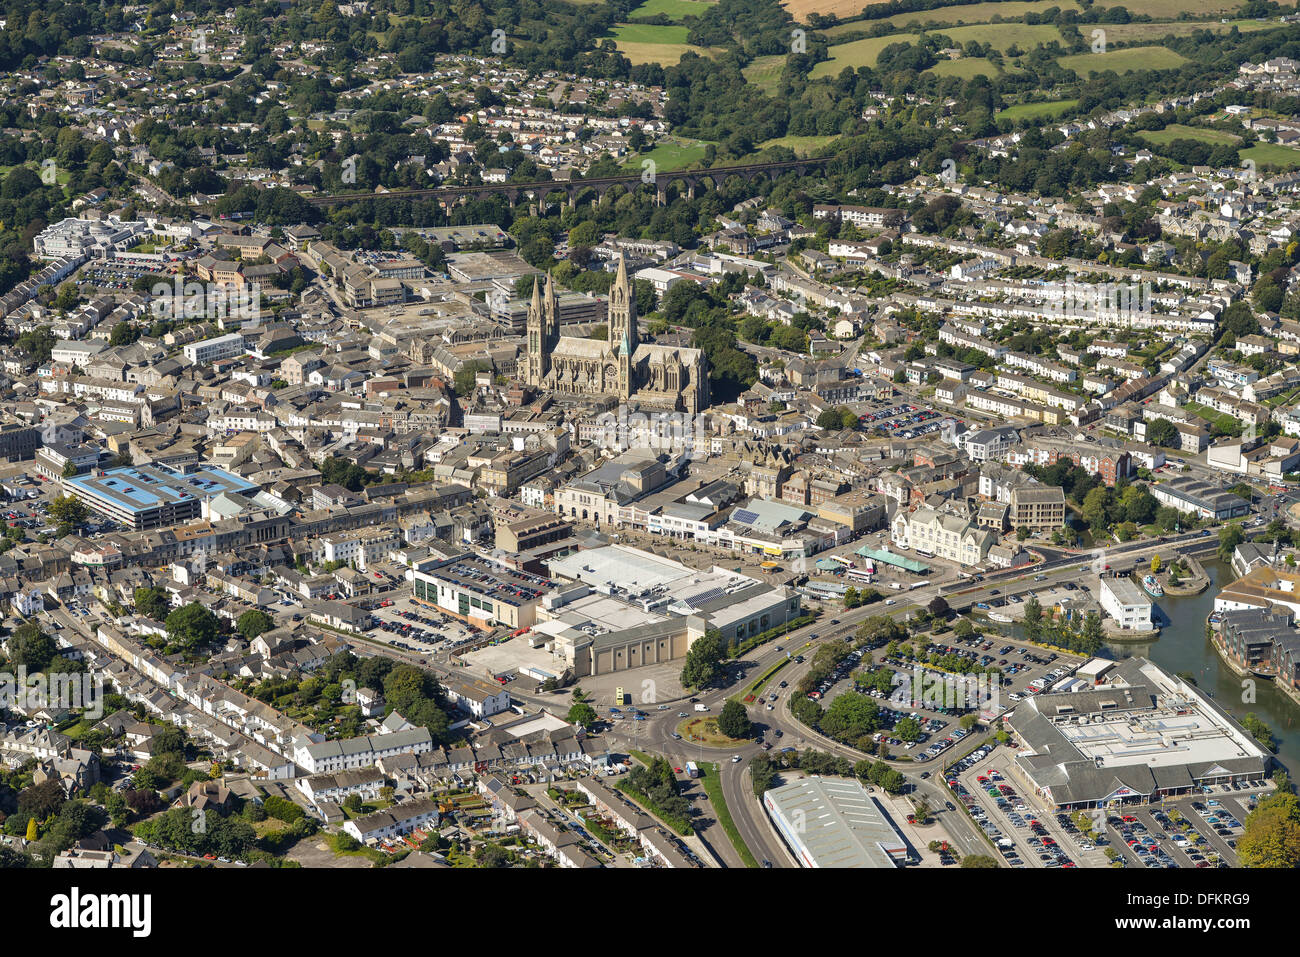 Aerial photograph of Truro City centre - Stock Image